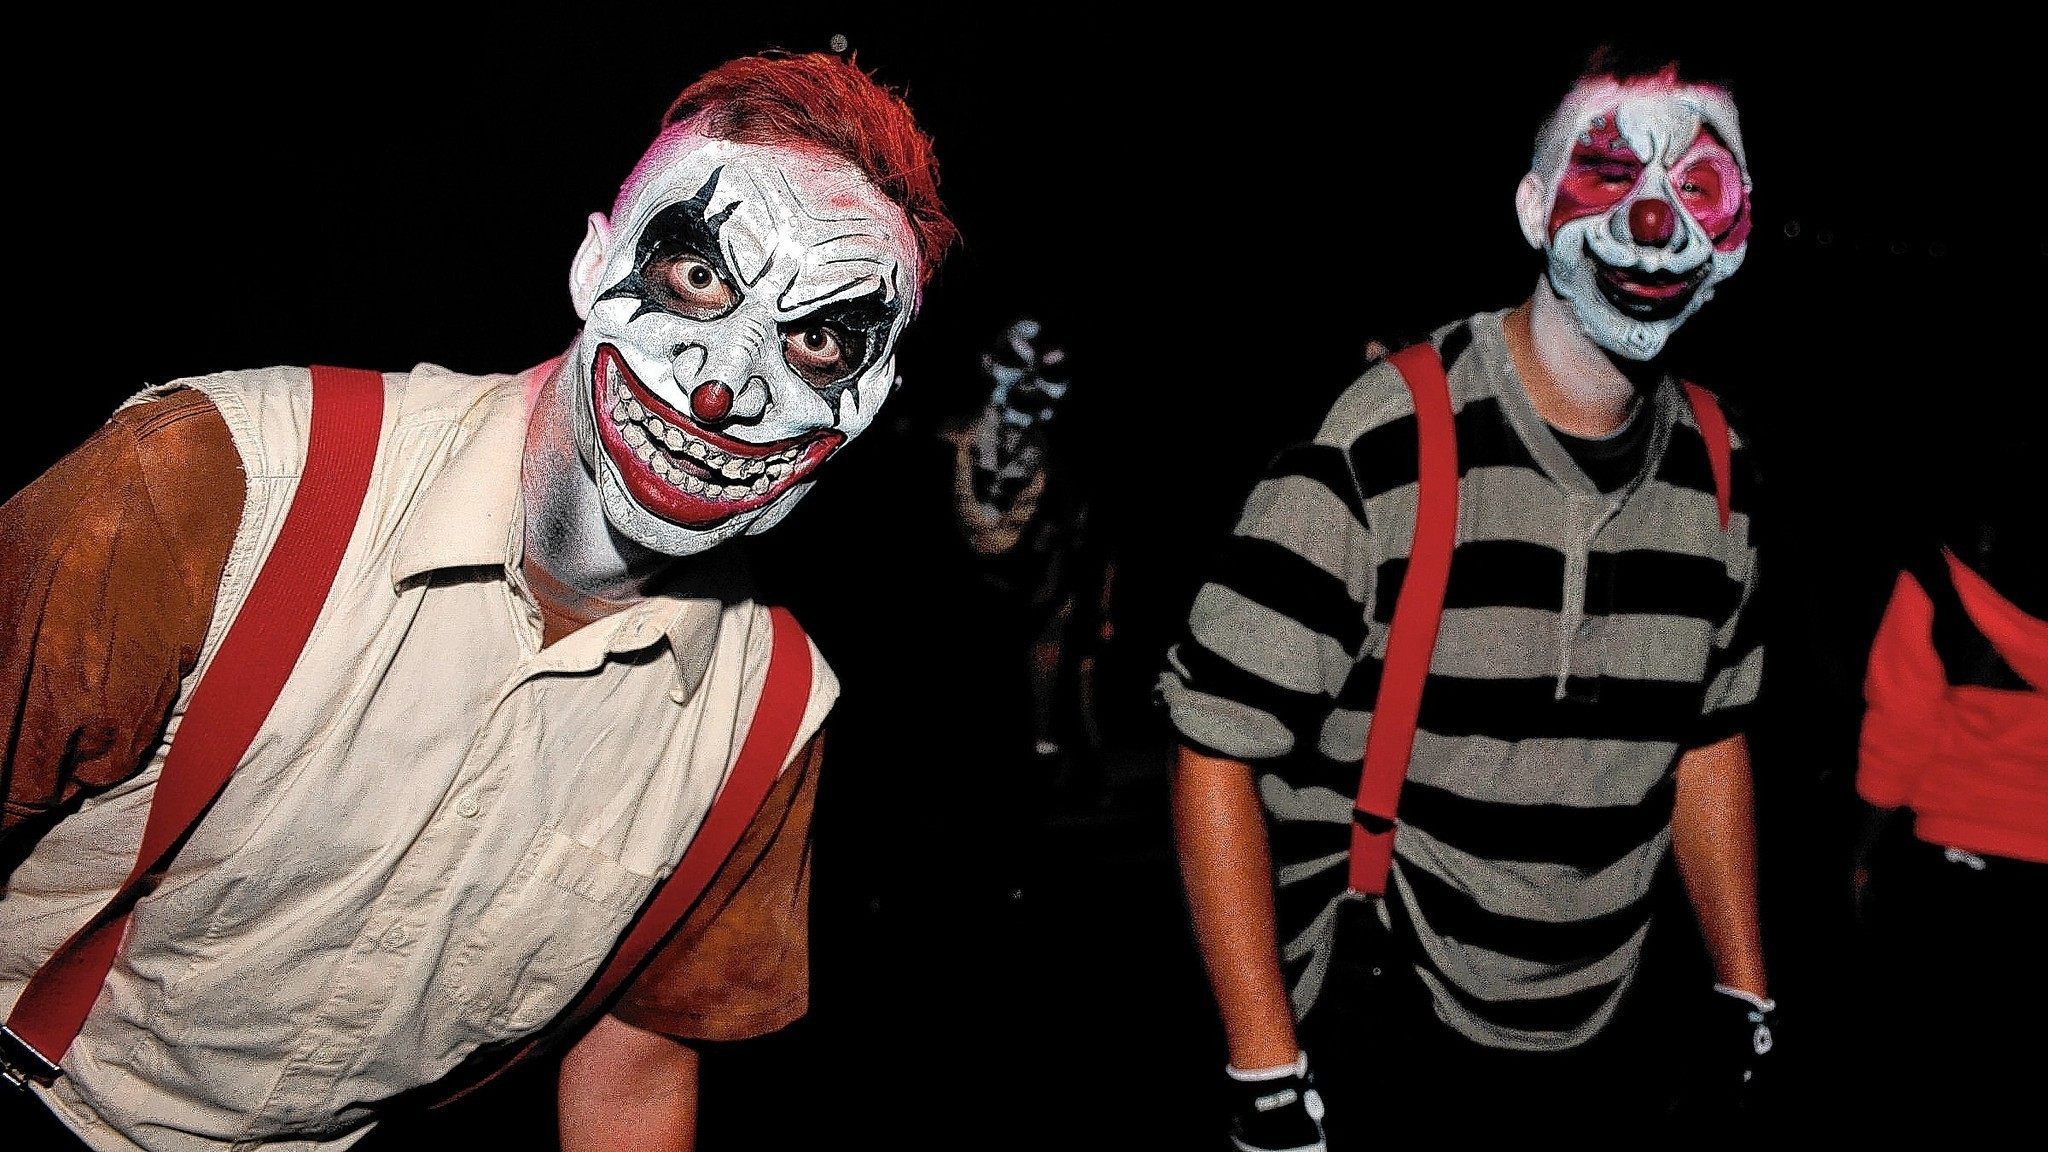 dorney park's halloween haunt offers extreme screams - the morning call